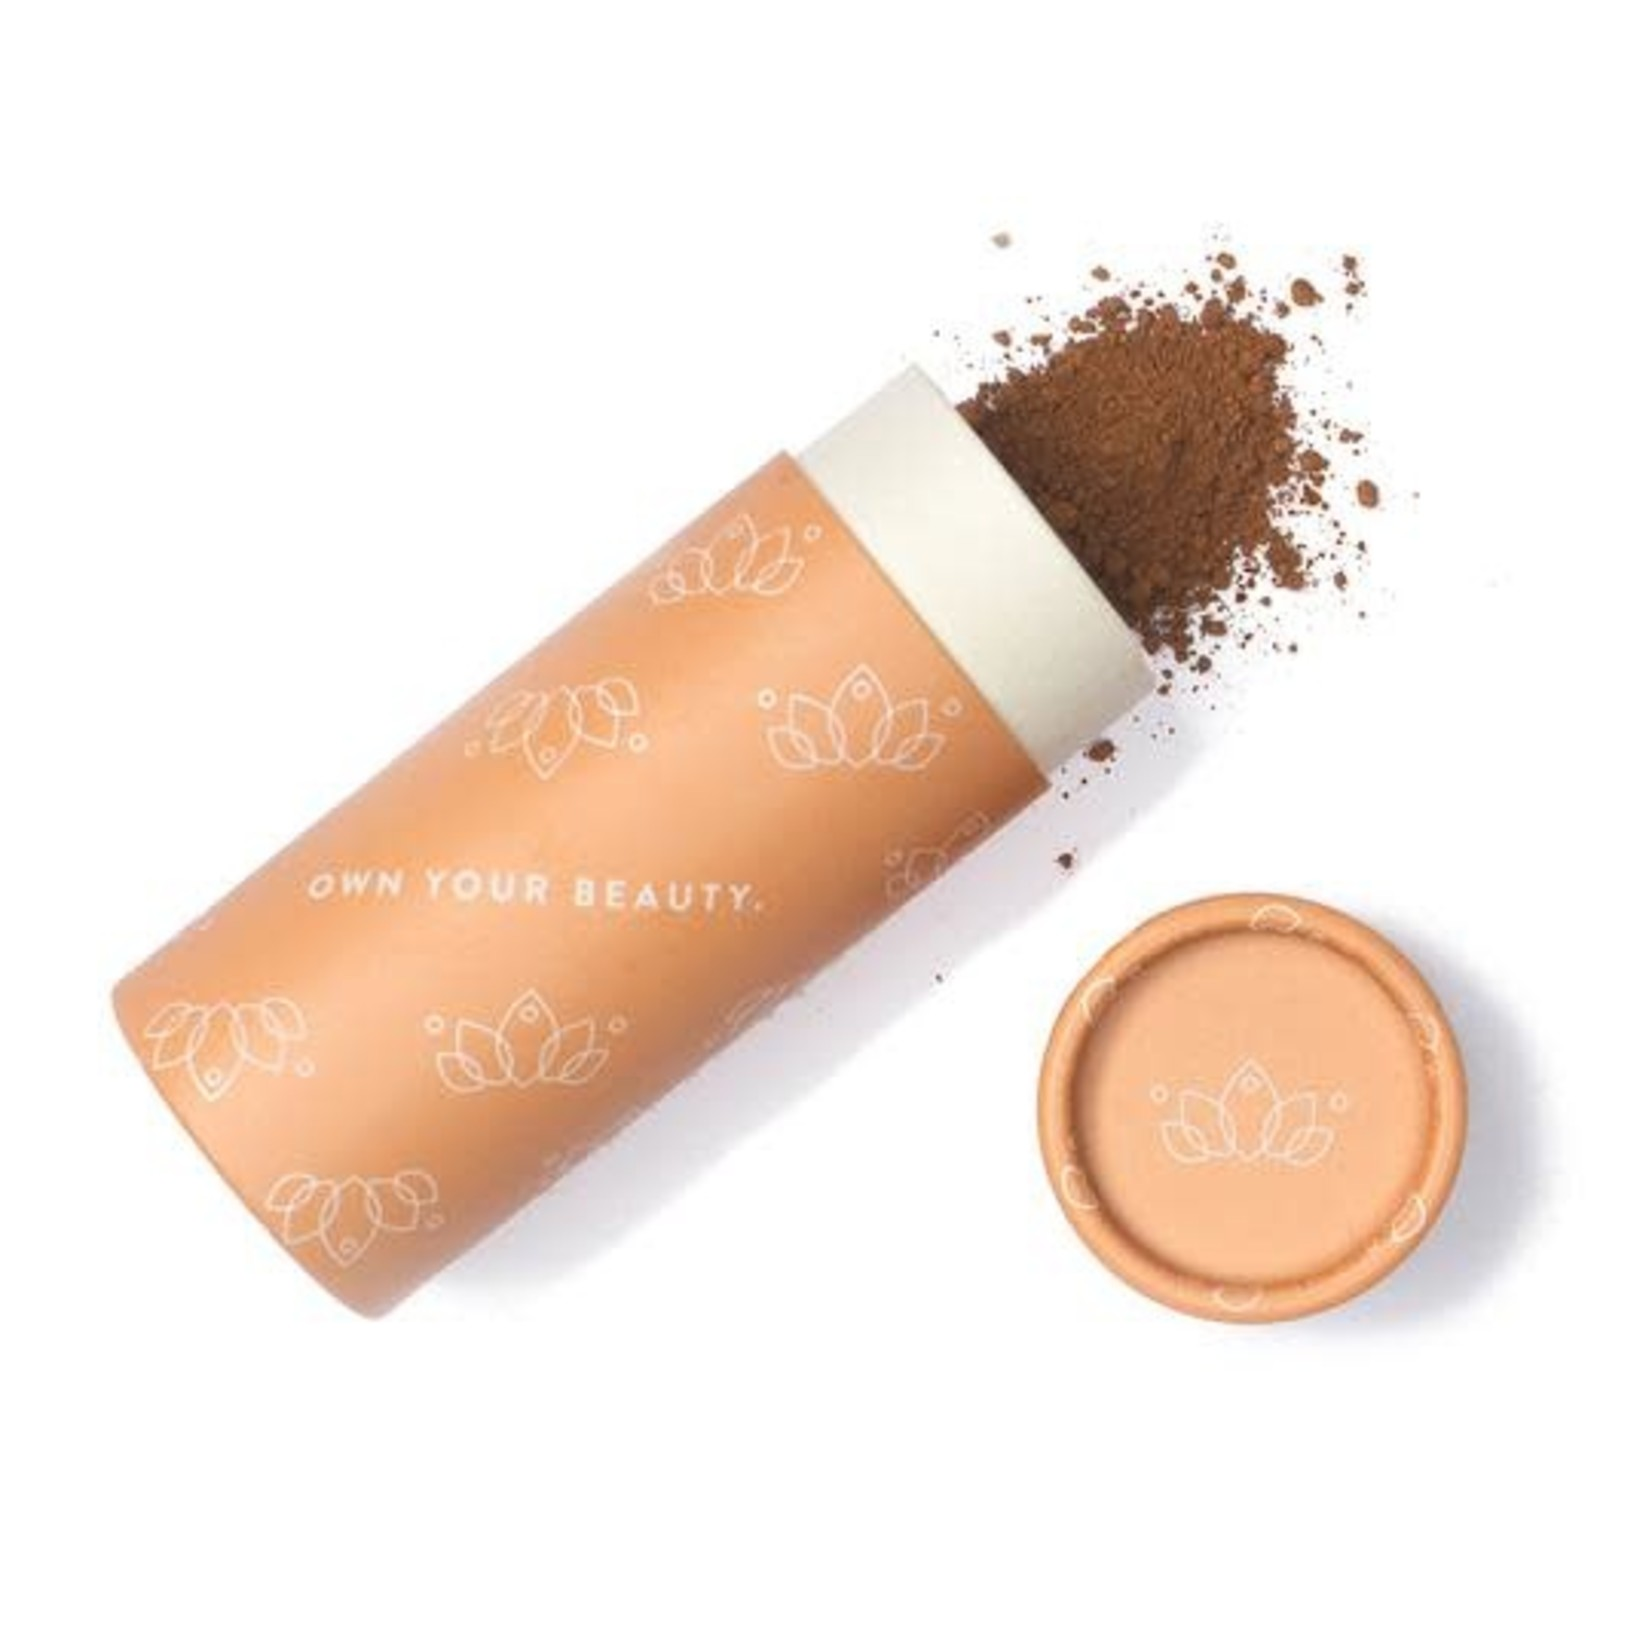 ELATE COSMETICS UNIFY BRONZE POWDER - DEEP